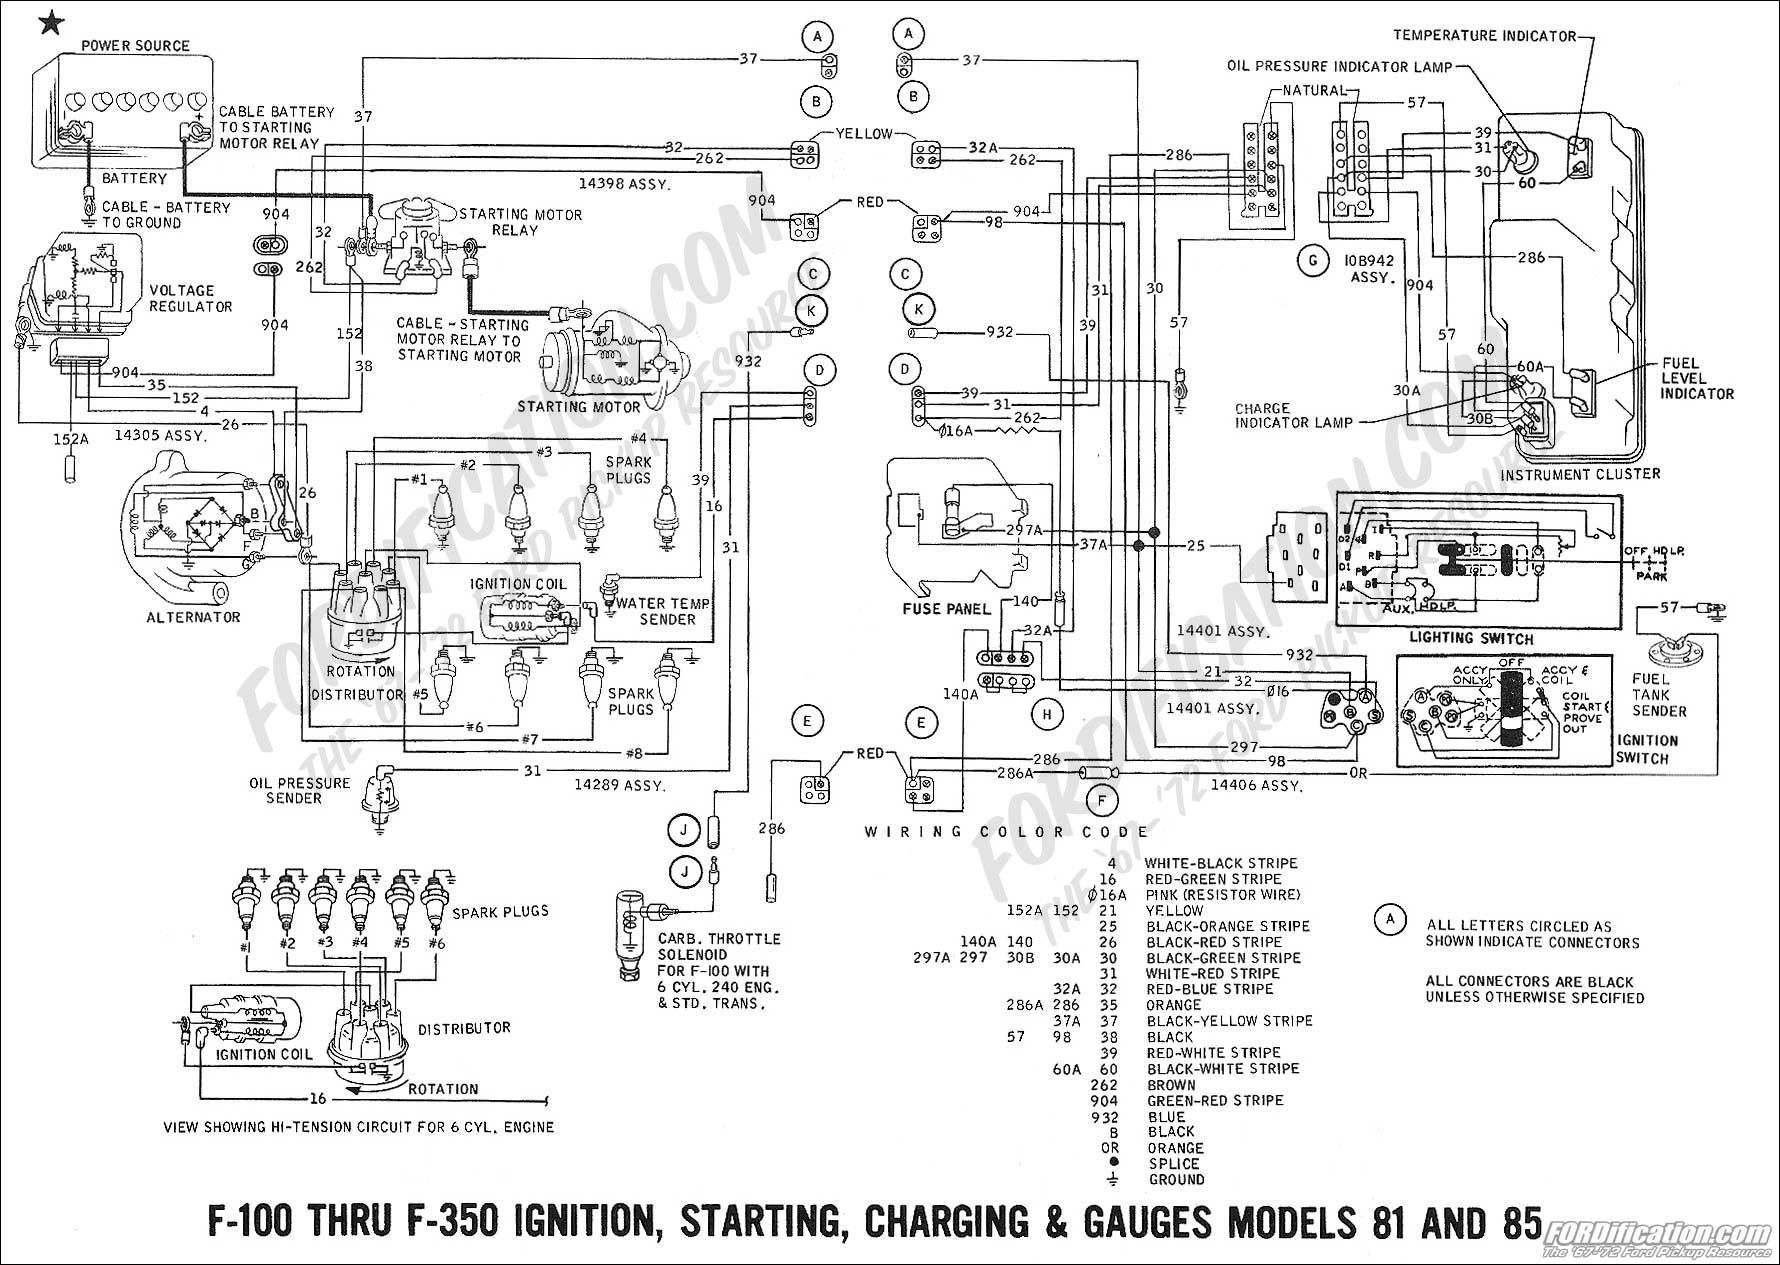 hight resolution of 1989 f700 wiring diagram wiring diagram used 1989 f700 wiring diagram